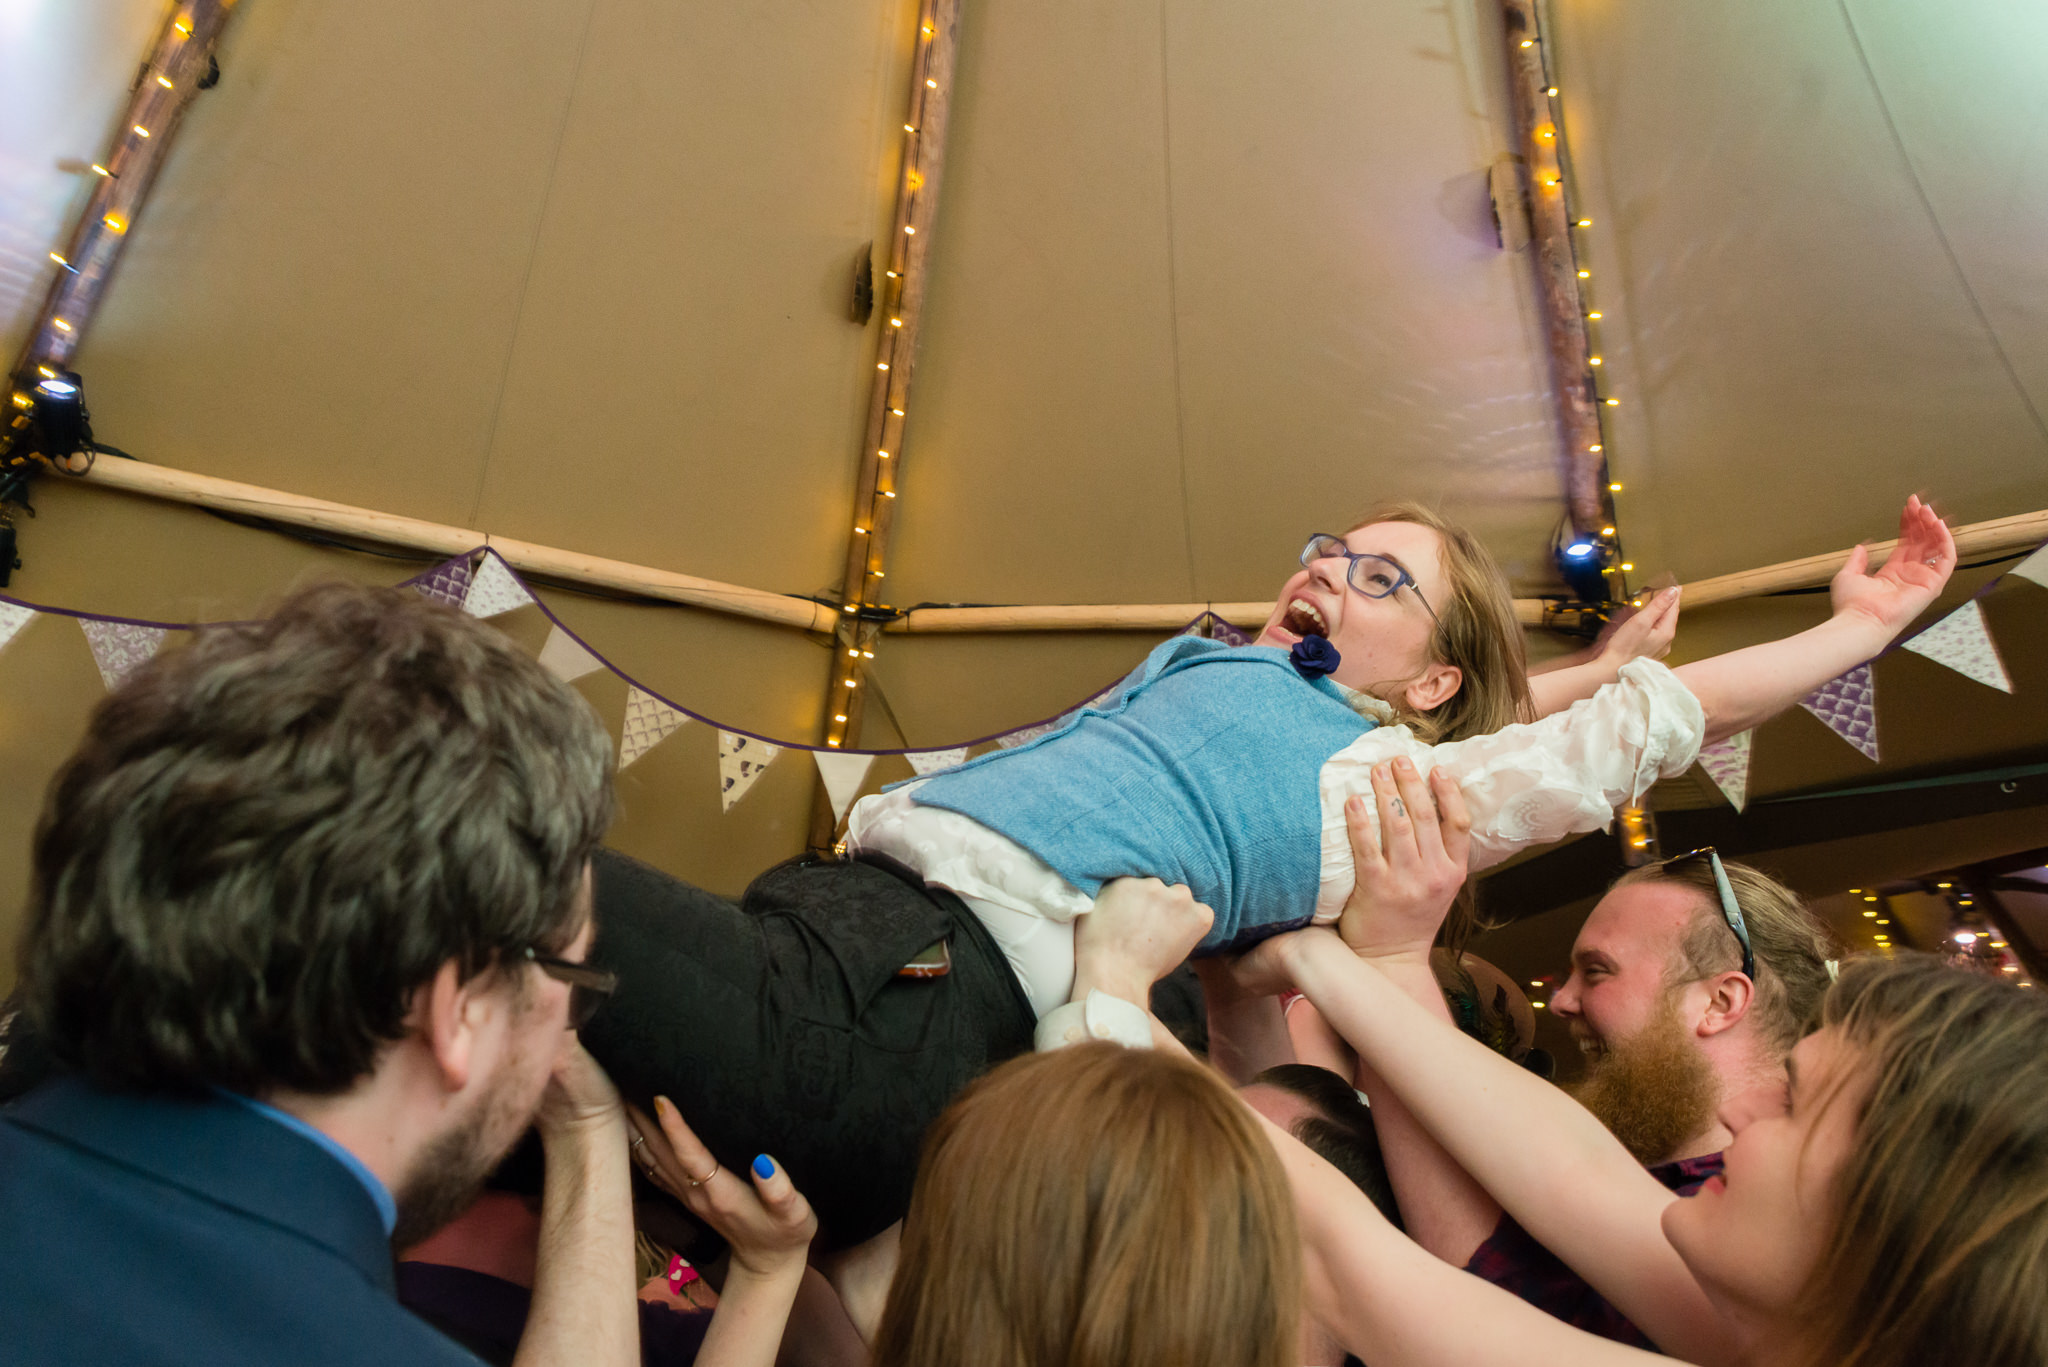 The Bride crowd Surfs during her tipi wedding reception